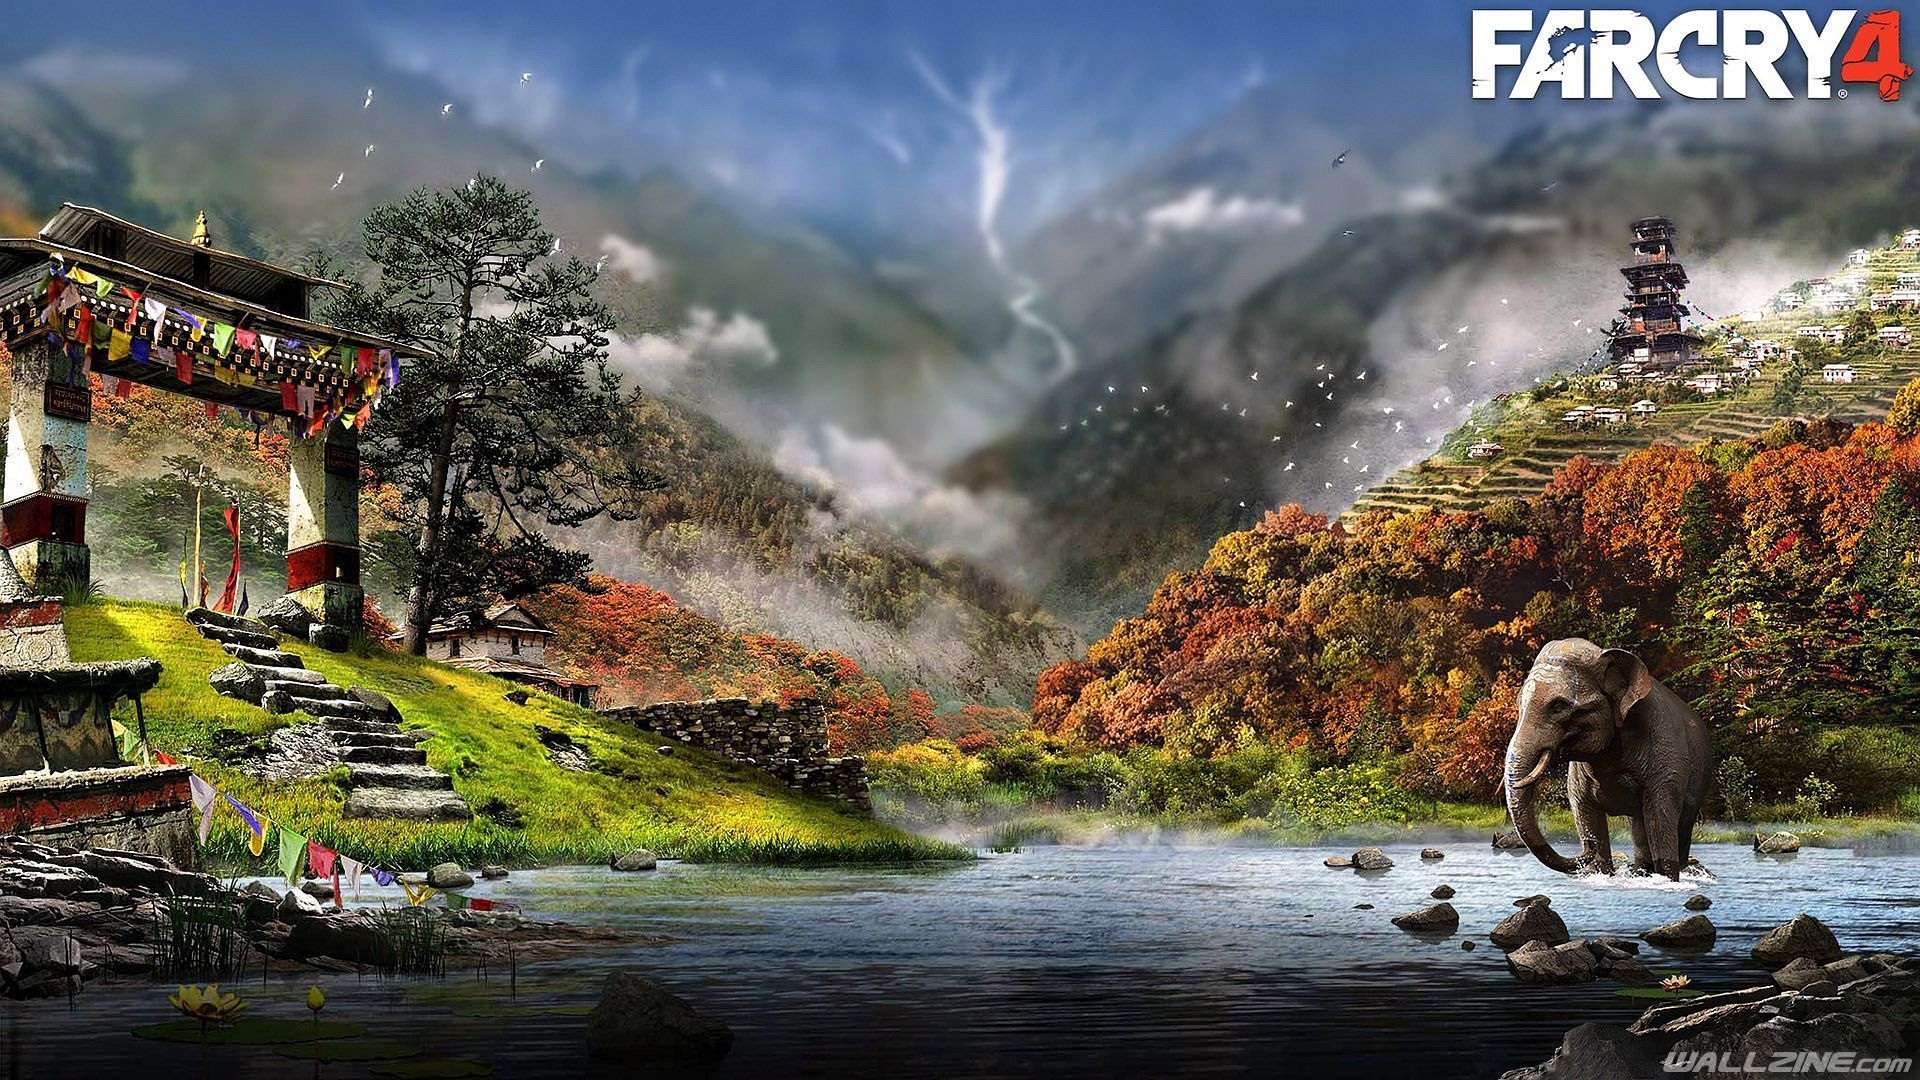 Far Cry 4 Wallpaper 4k In 2020 Landscape Wallpaper Far Cry 4 Landscape